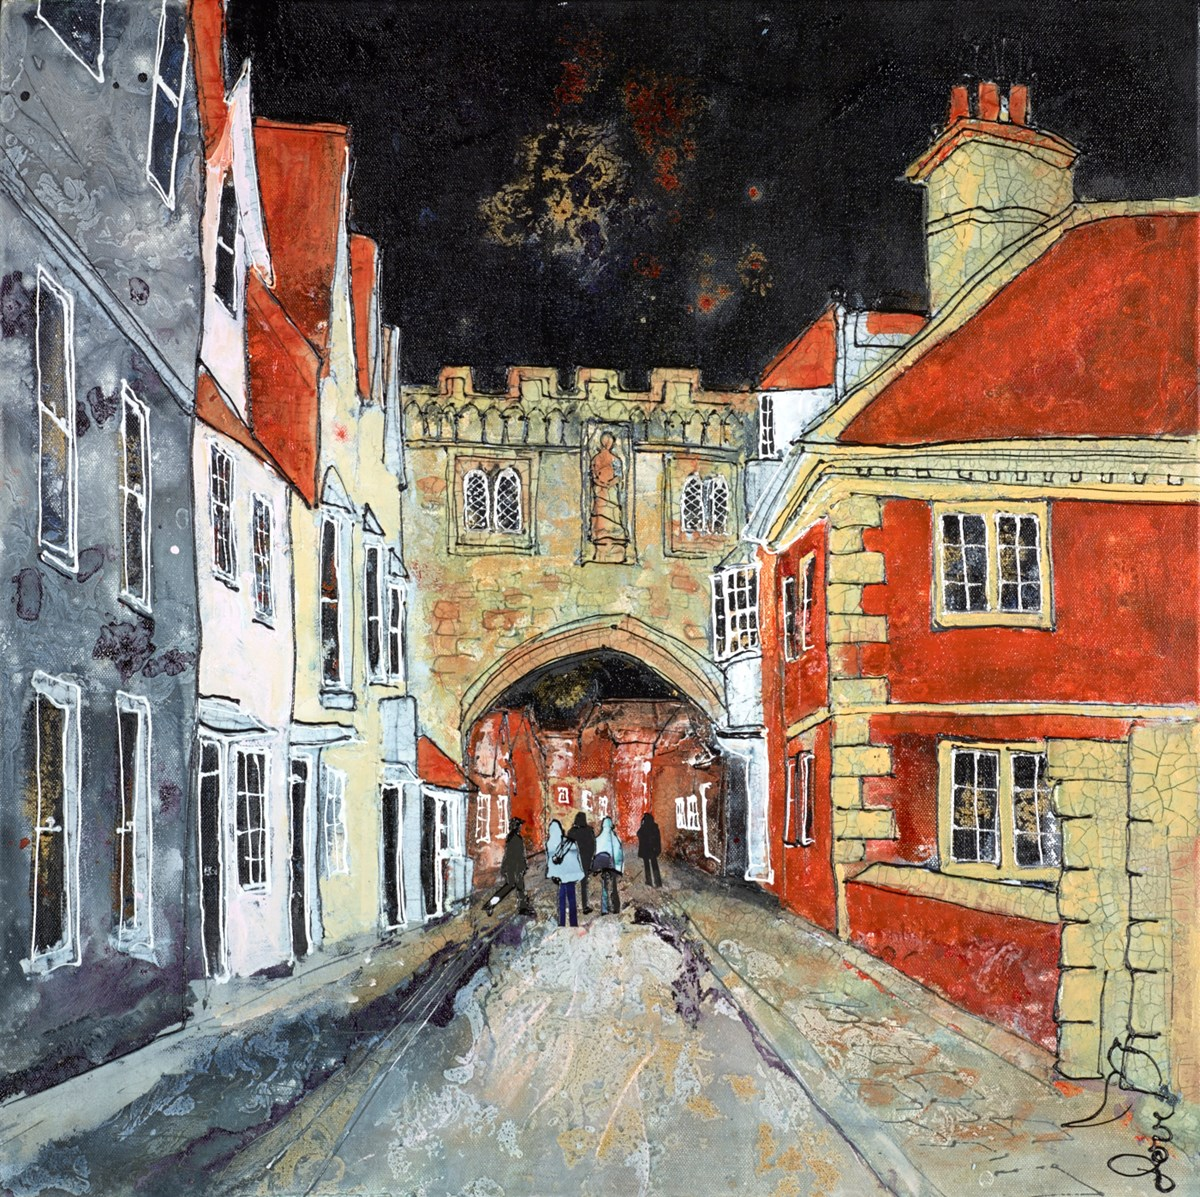 Salisbury North Gate II by katharine dove -  sized 24x24 inches. Available from Whitewall Galleries